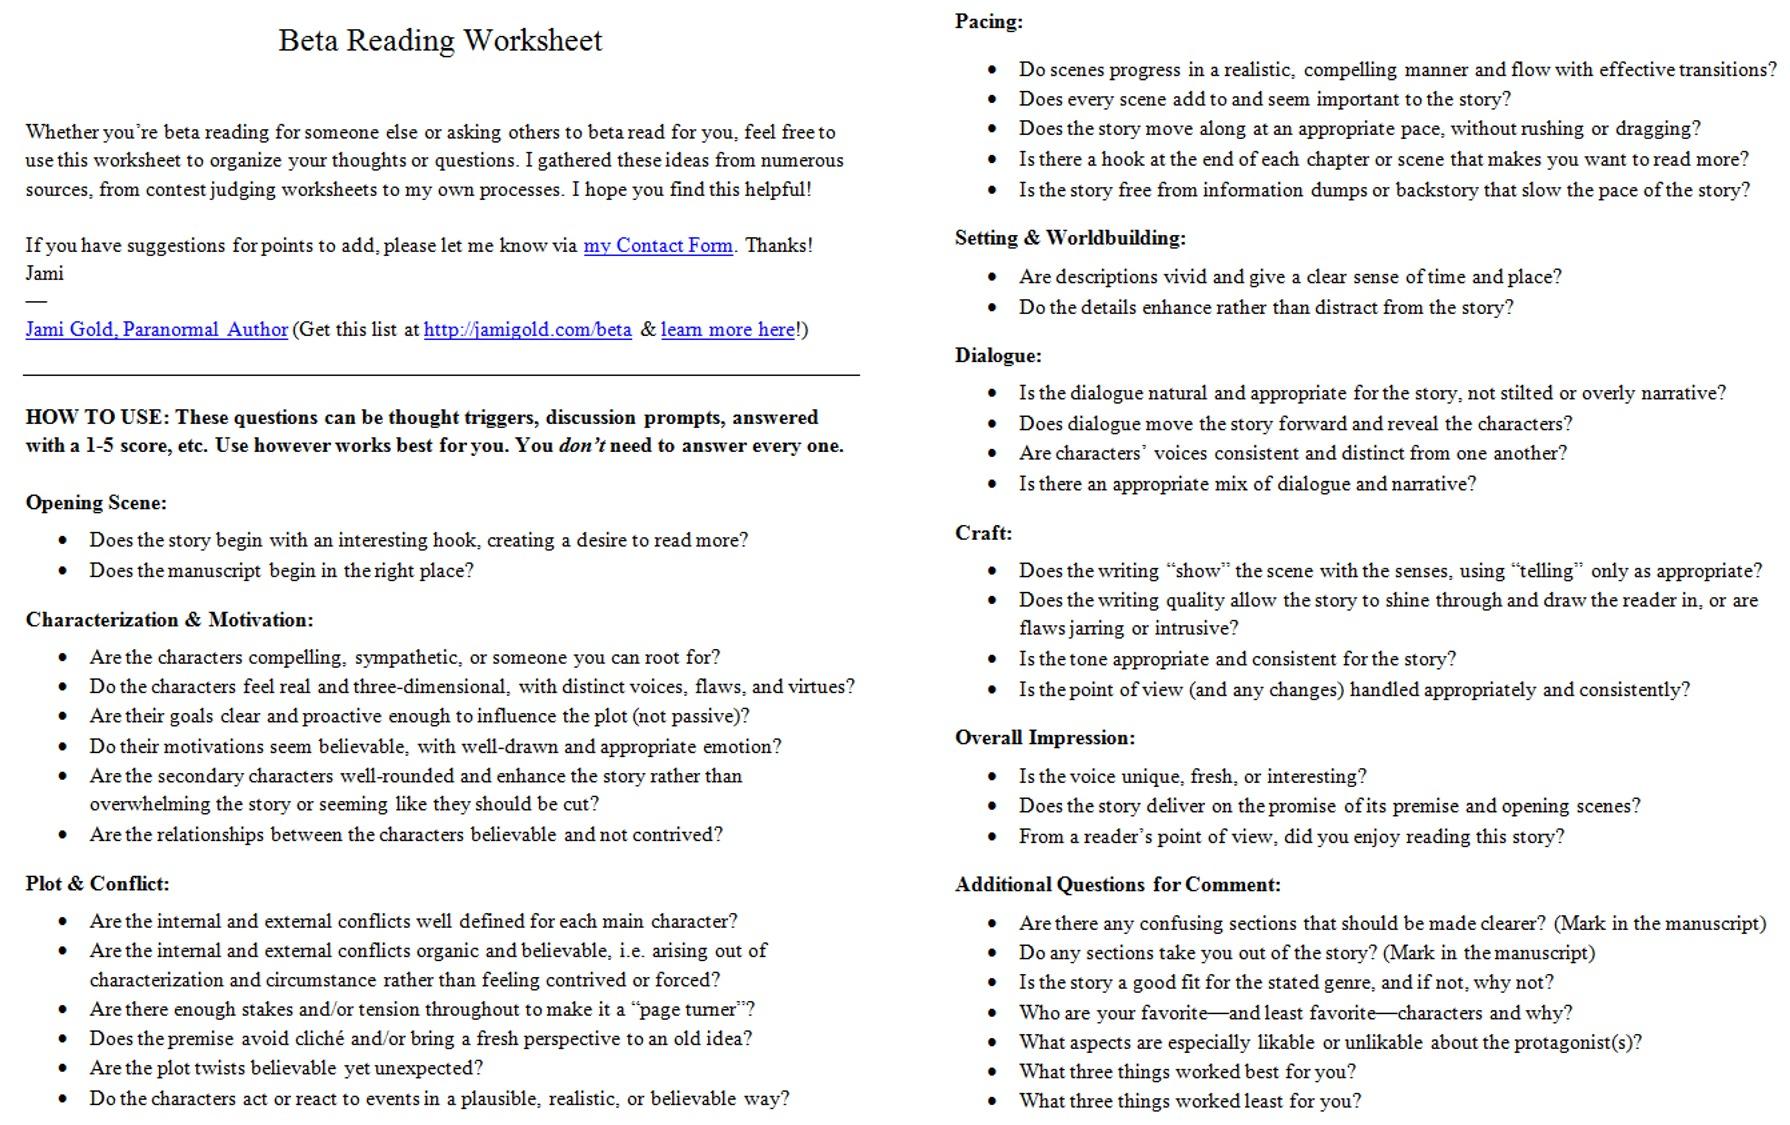 Proatmealus  Nice Worksheets For Writers  Jami Gold Paranormal Author With Lovable Screen Shot Of The Twopage Beta Reading Worksheet With Adorable Main Idea And Details Worksheets Th Grade Also Quadrilateral Worksheets Rd Grade In Addition Addition And Subtraction Of Decimals Worksheets And Chloroplast Worksheet As Well As Sequence Worksheets Rd Grade Additionally Food Cost Worksheet From Jamigoldcom With Proatmealus  Lovable Worksheets For Writers  Jami Gold Paranormal Author With Adorable Screen Shot Of The Twopage Beta Reading Worksheet And Nice Main Idea And Details Worksheets Th Grade Also Quadrilateral Worksheets Rd Grade In Addition Addition And Subtraction Of Decimals Worksheets From Jamigoldcom